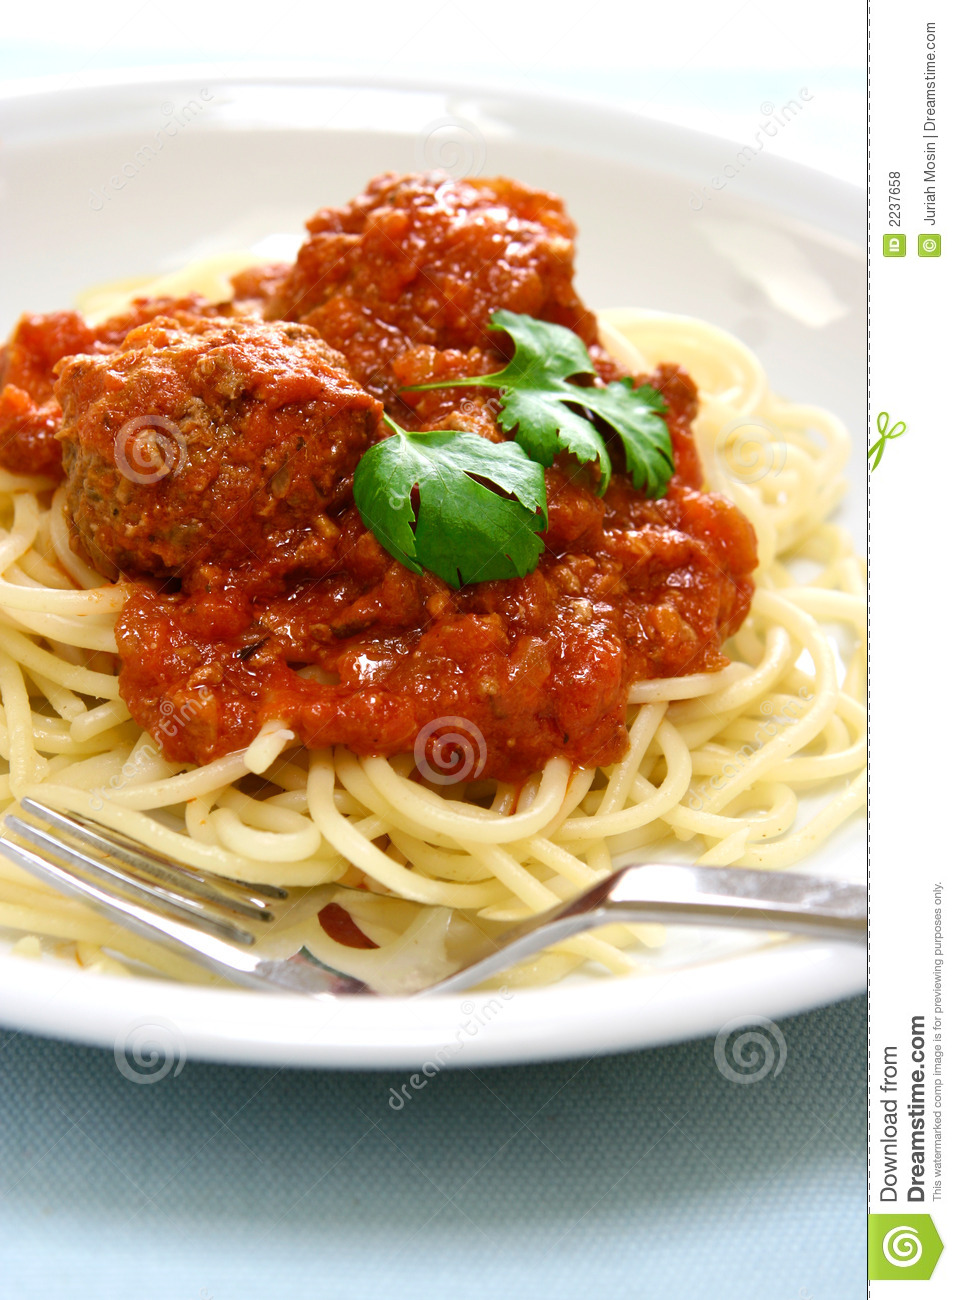 Spaghetti With Meat Ball Royalty Free Stock Photos - Image ...